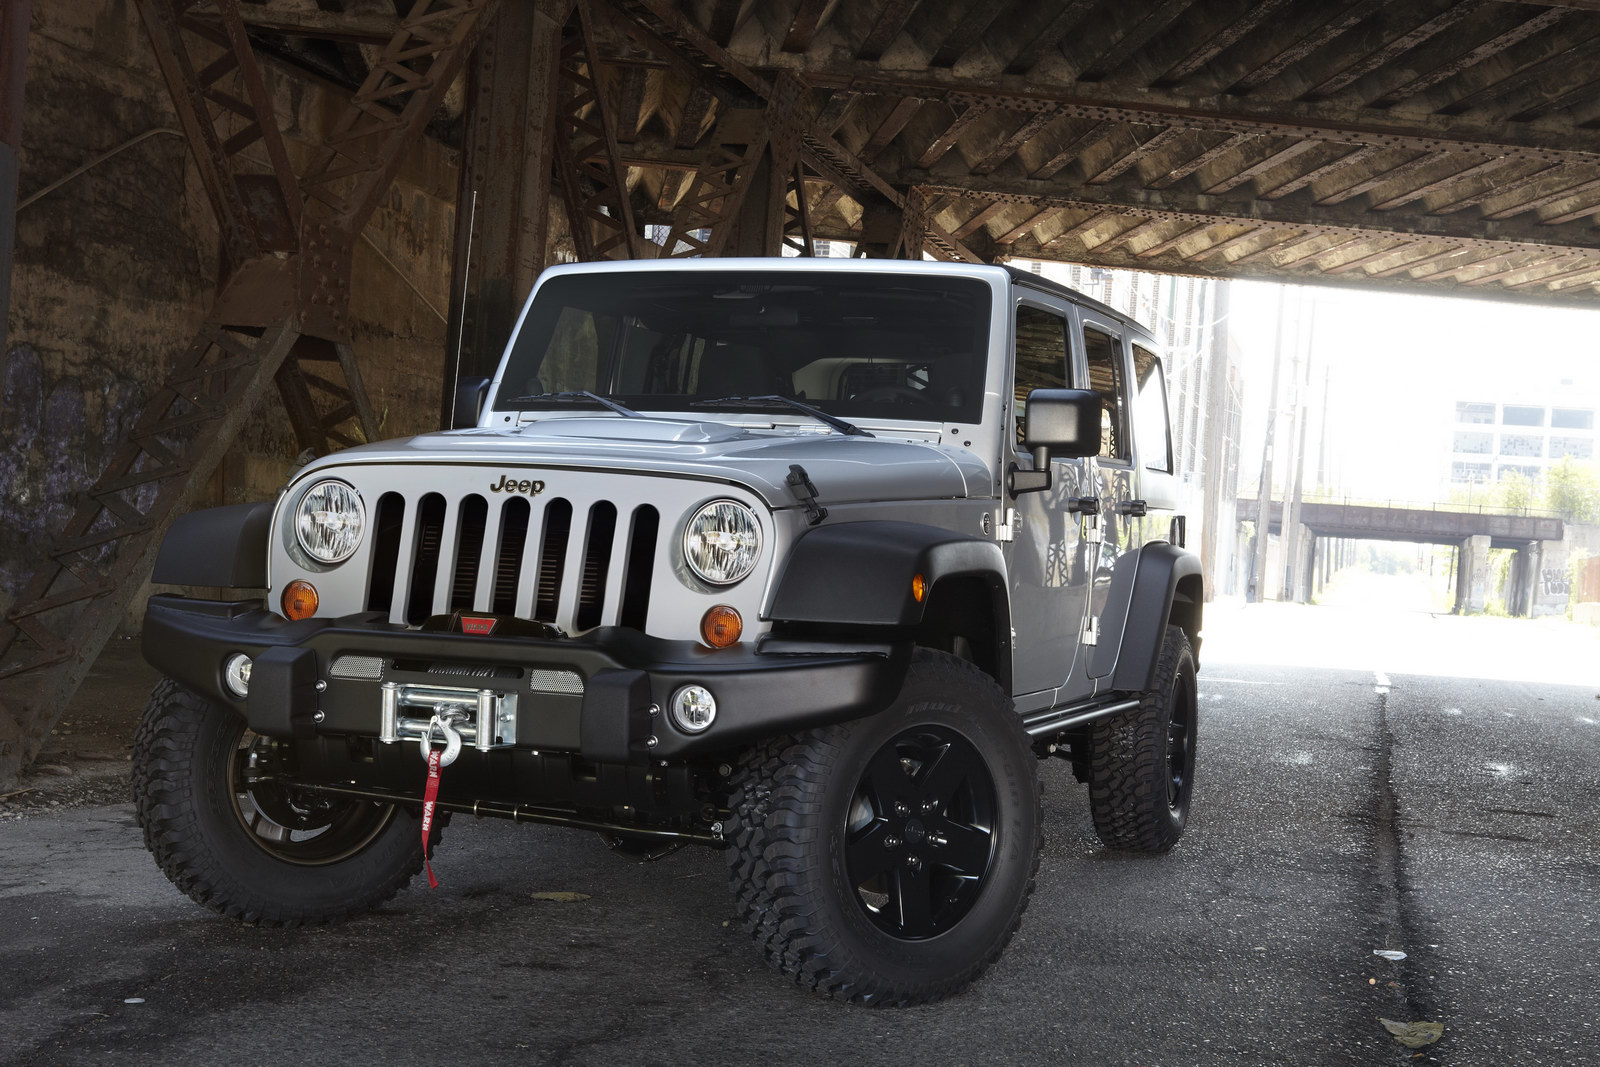 2011 Jeep Wrangler MW3 3 Special Edition 2012 Wrangler   Call of Duty: MW3